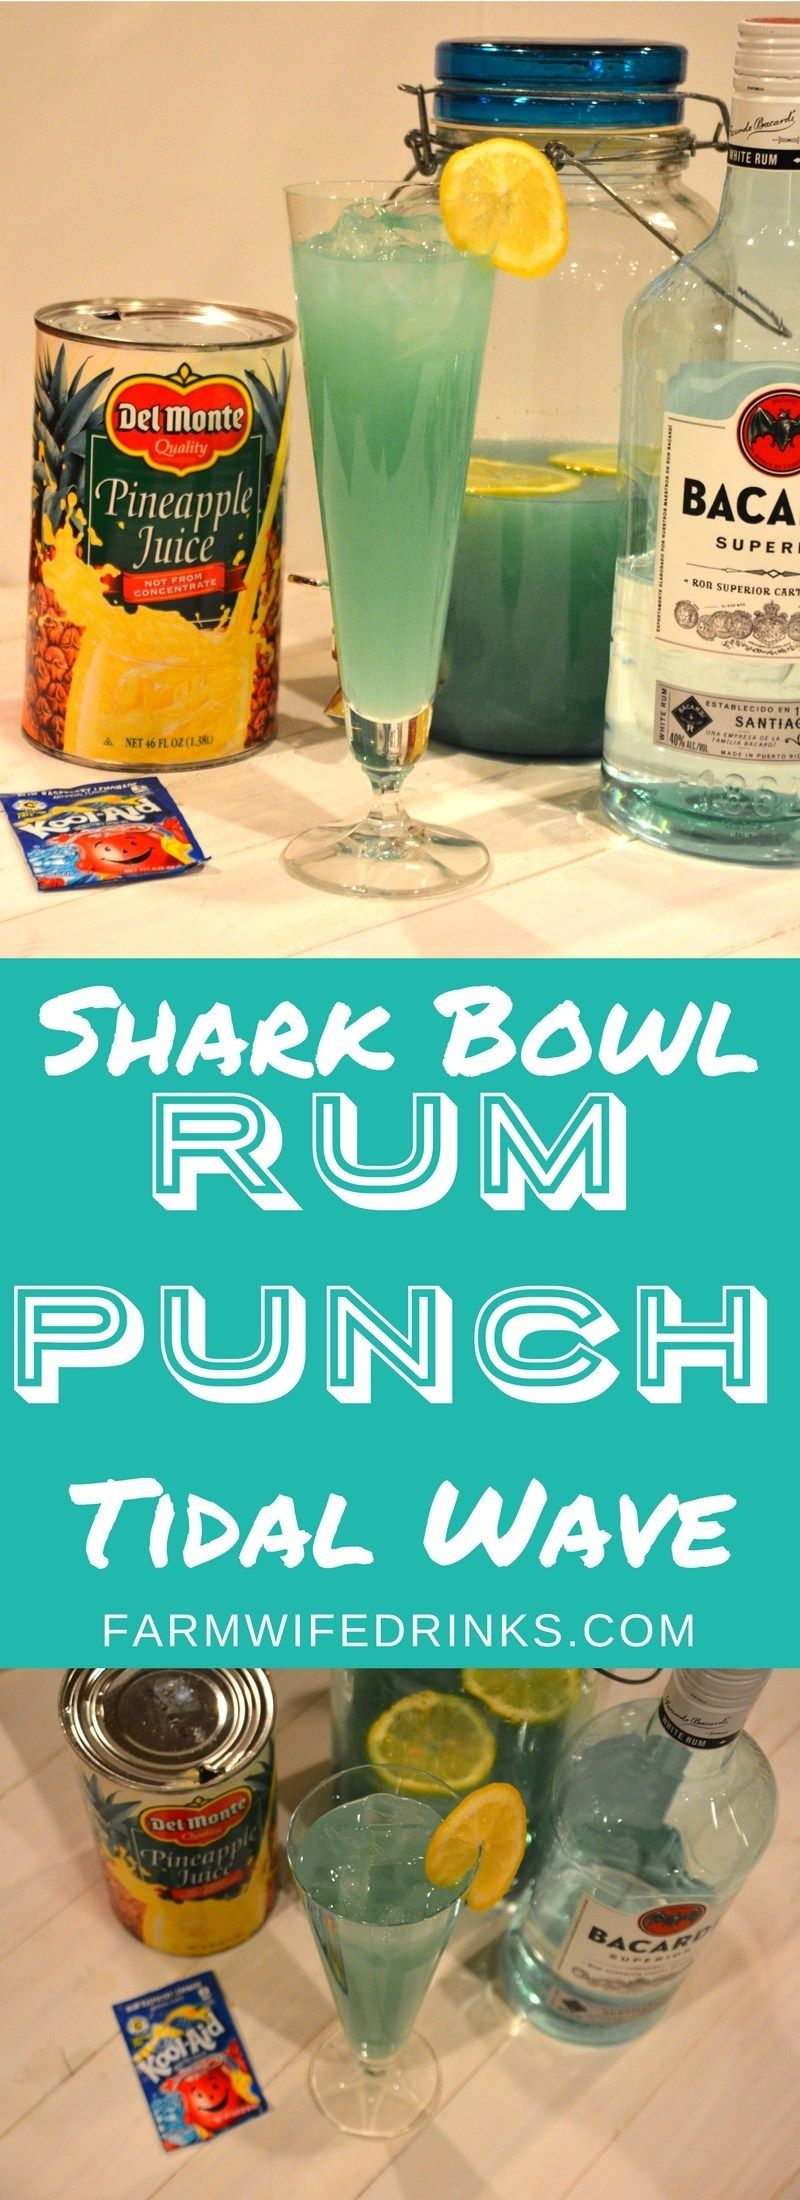 Well, this rum punch - tidal wave or shark bowl punch will bring back memories of sitting around a fishbowl filled with punch and 20 straws. #vodkapunch